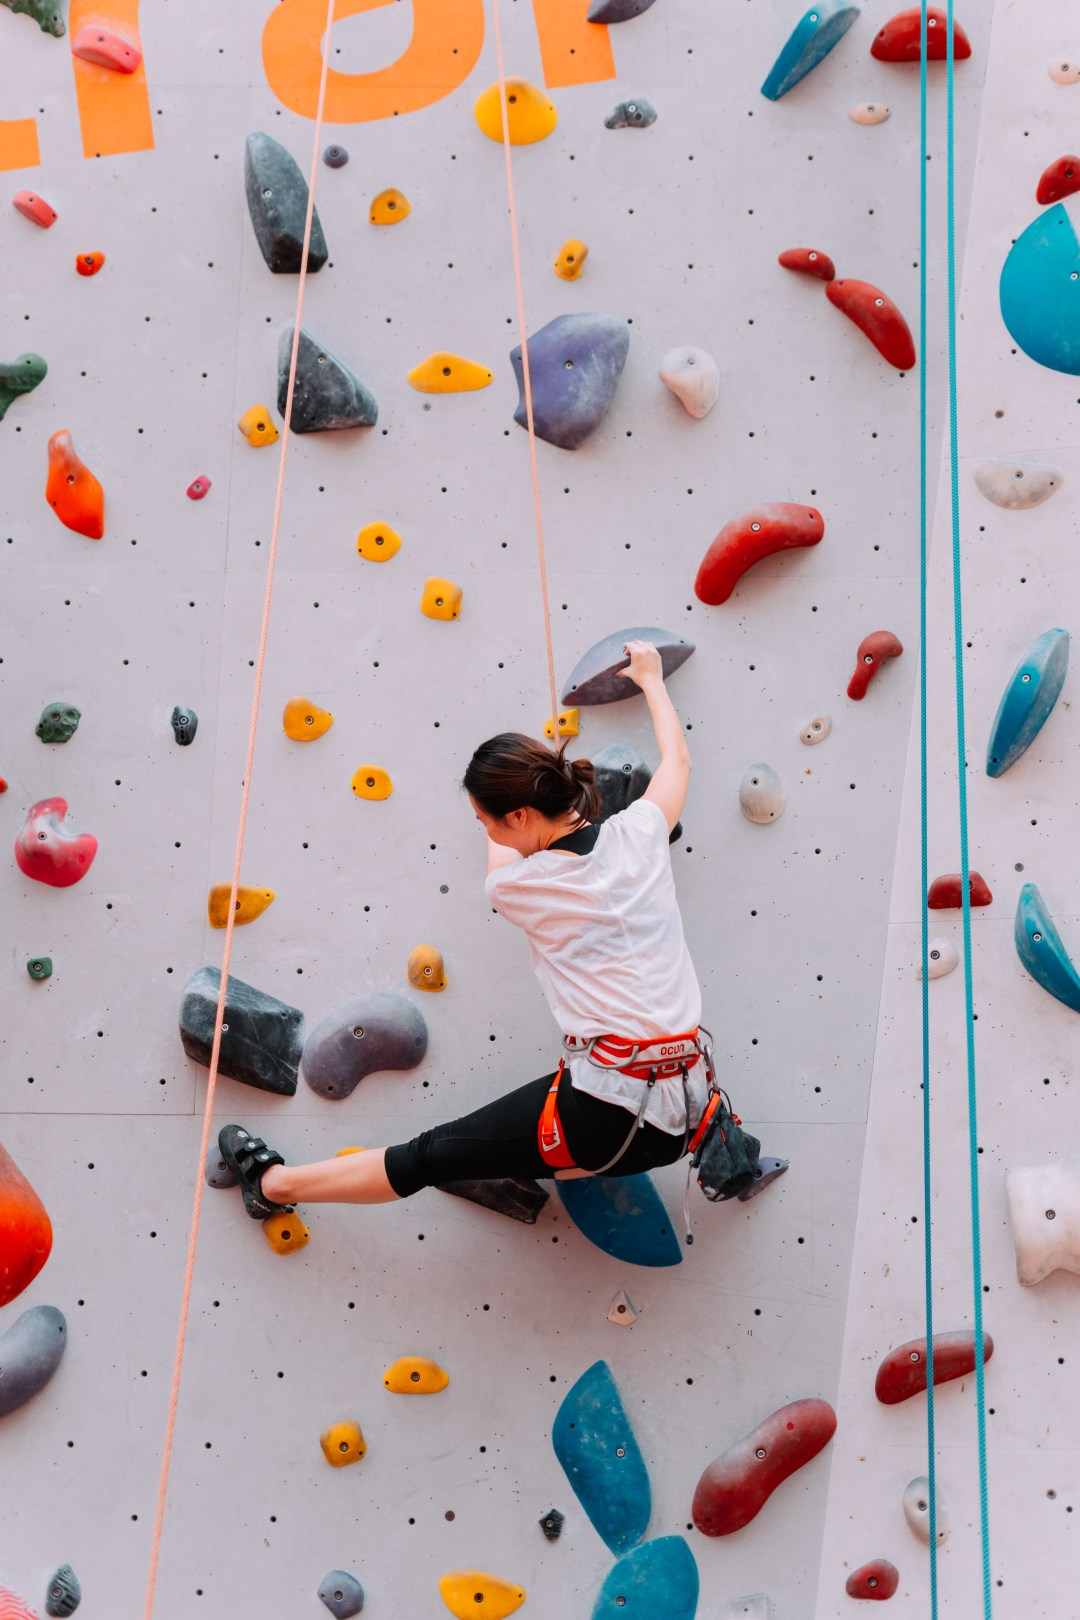 Woman Climbing On Wall During Daytime Photo Free Sport